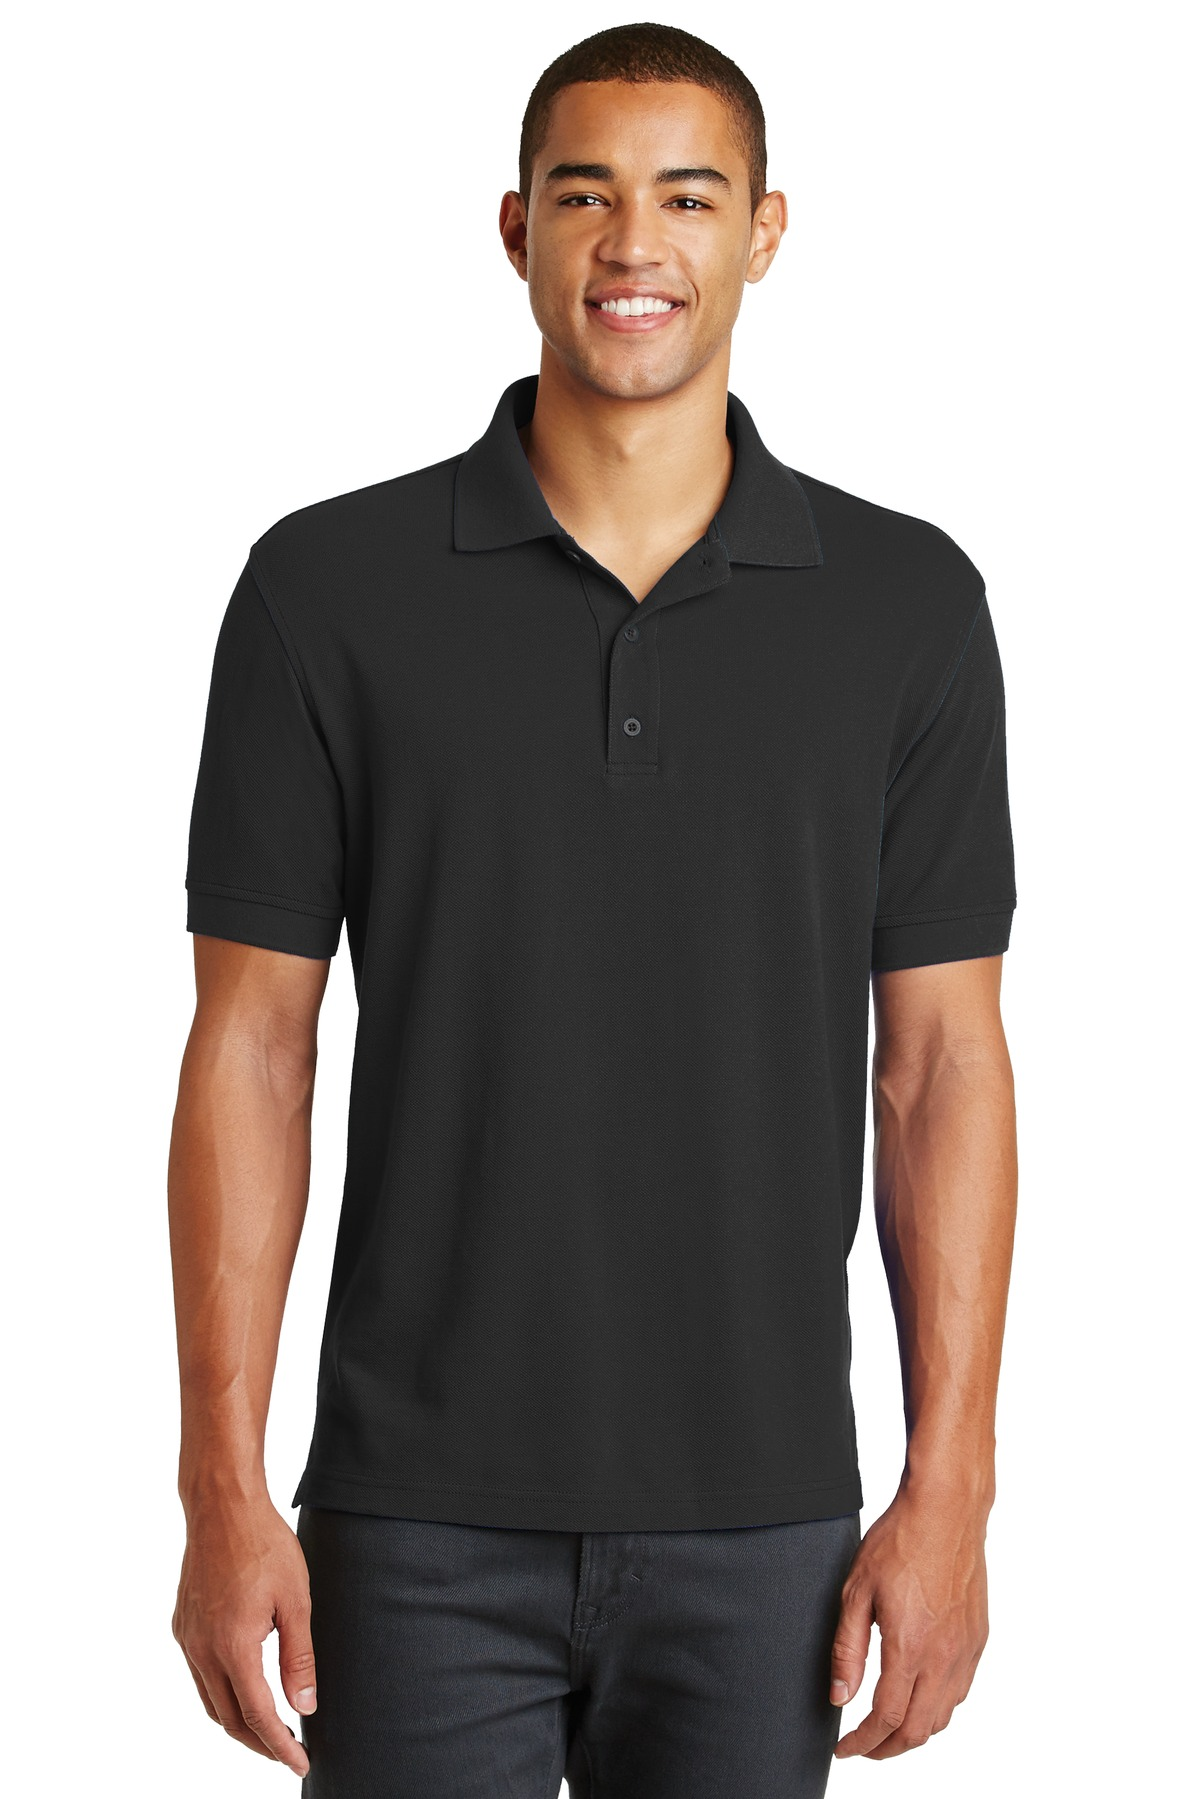 Eddie Bauer ®  Cotton Pique Polo. EB100 - Black